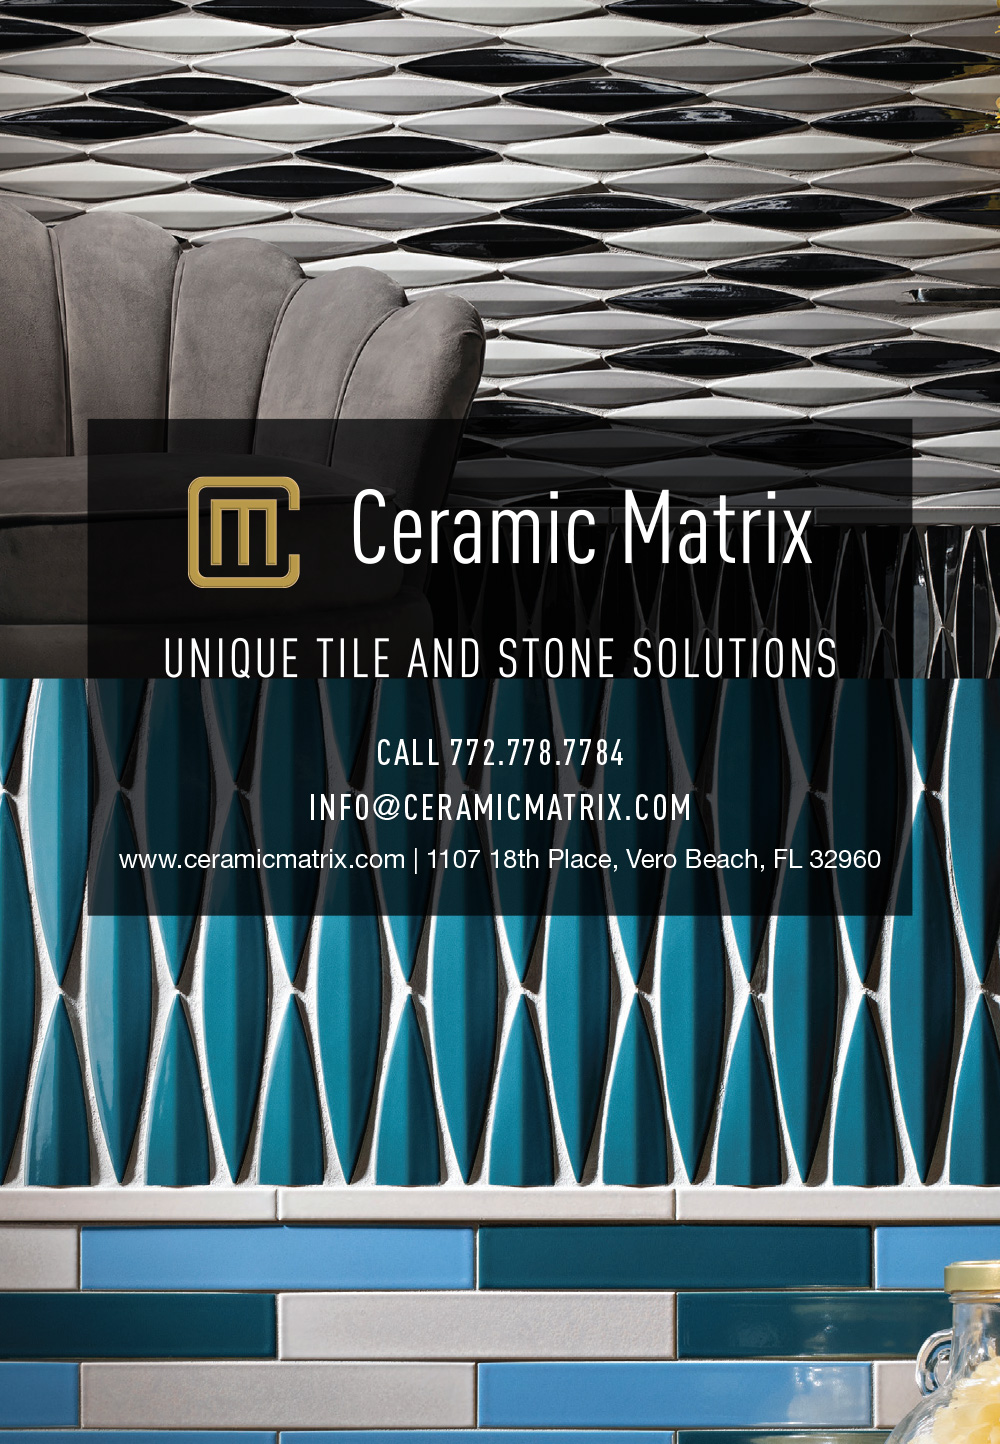 ceramicmatrix Vero Mag Fall 2019